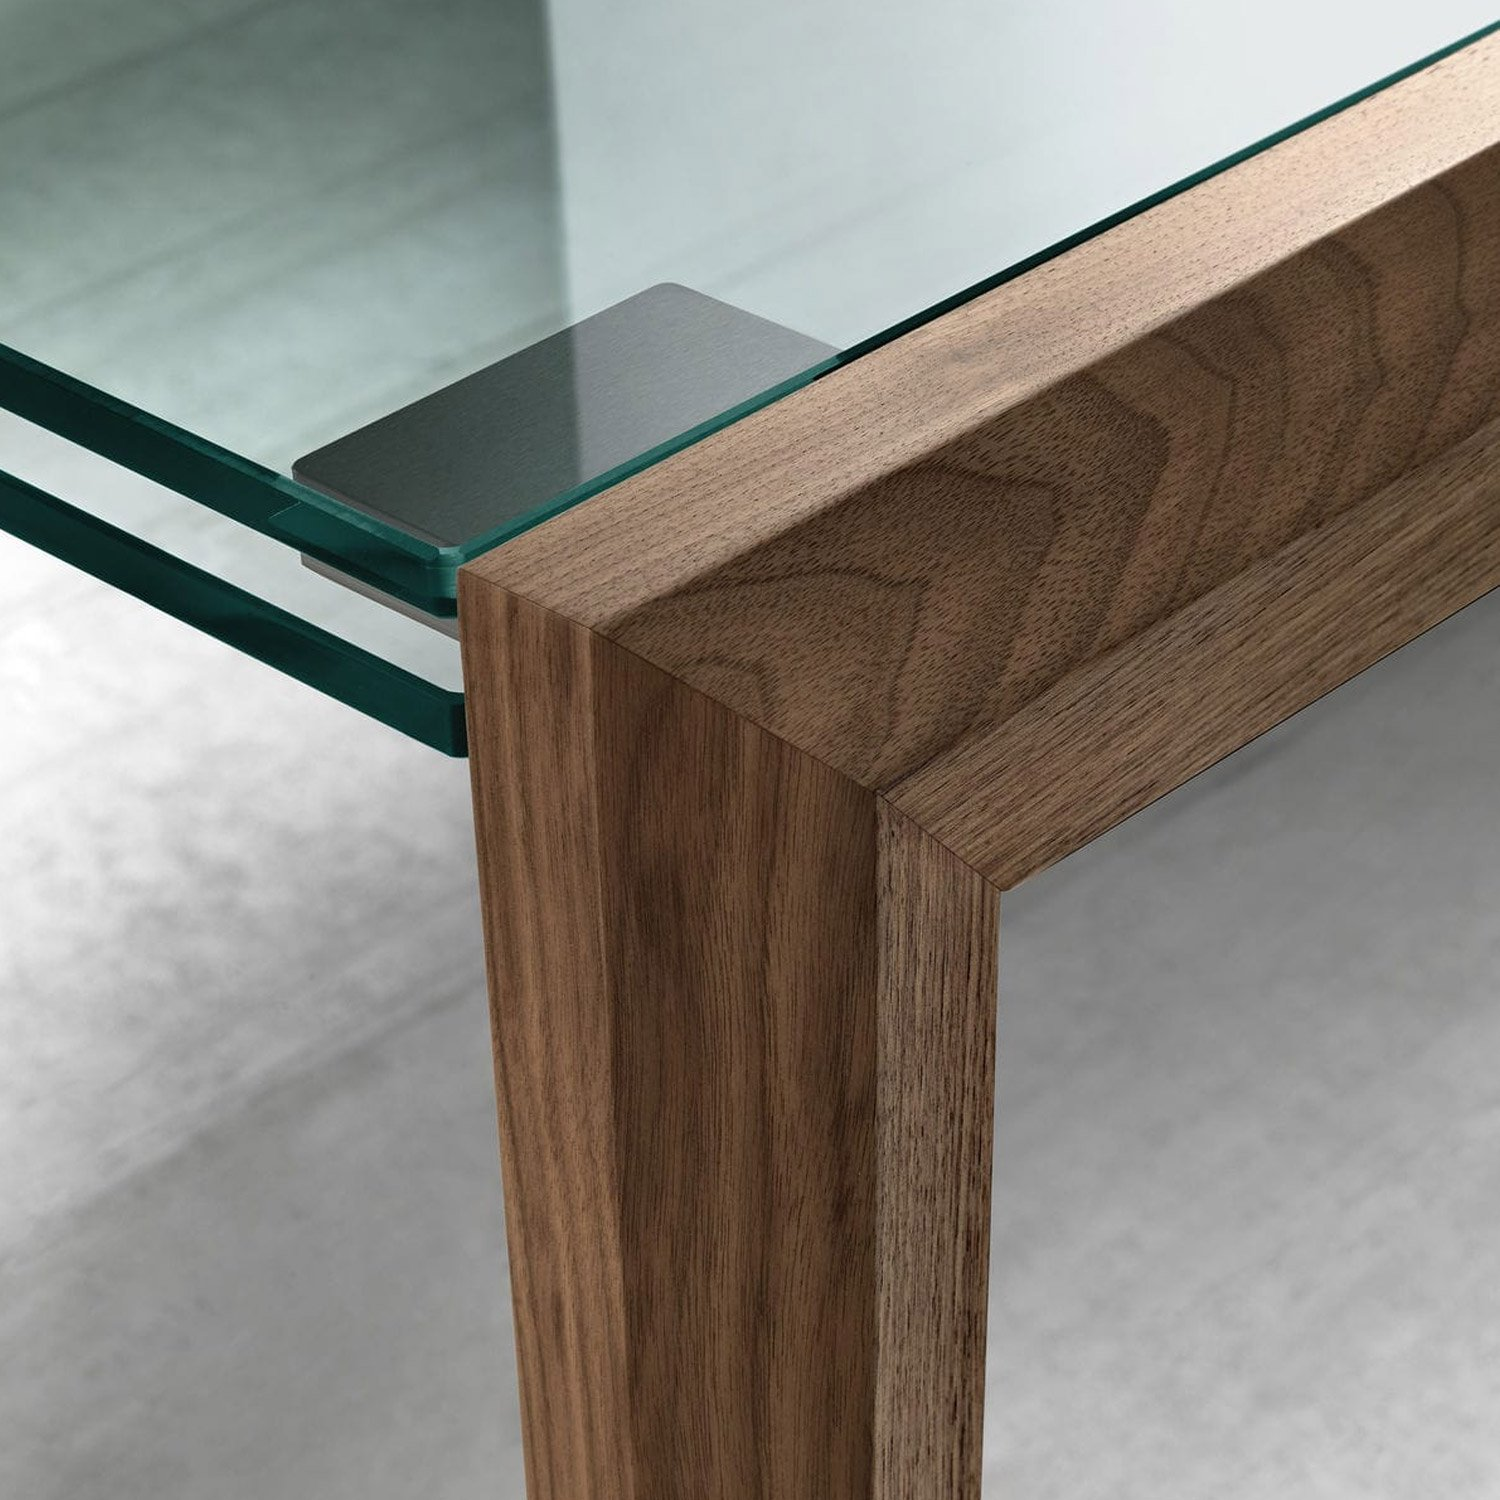 Lapsus extendable glass dining table by tonelli klarity for Extendable glass dining table